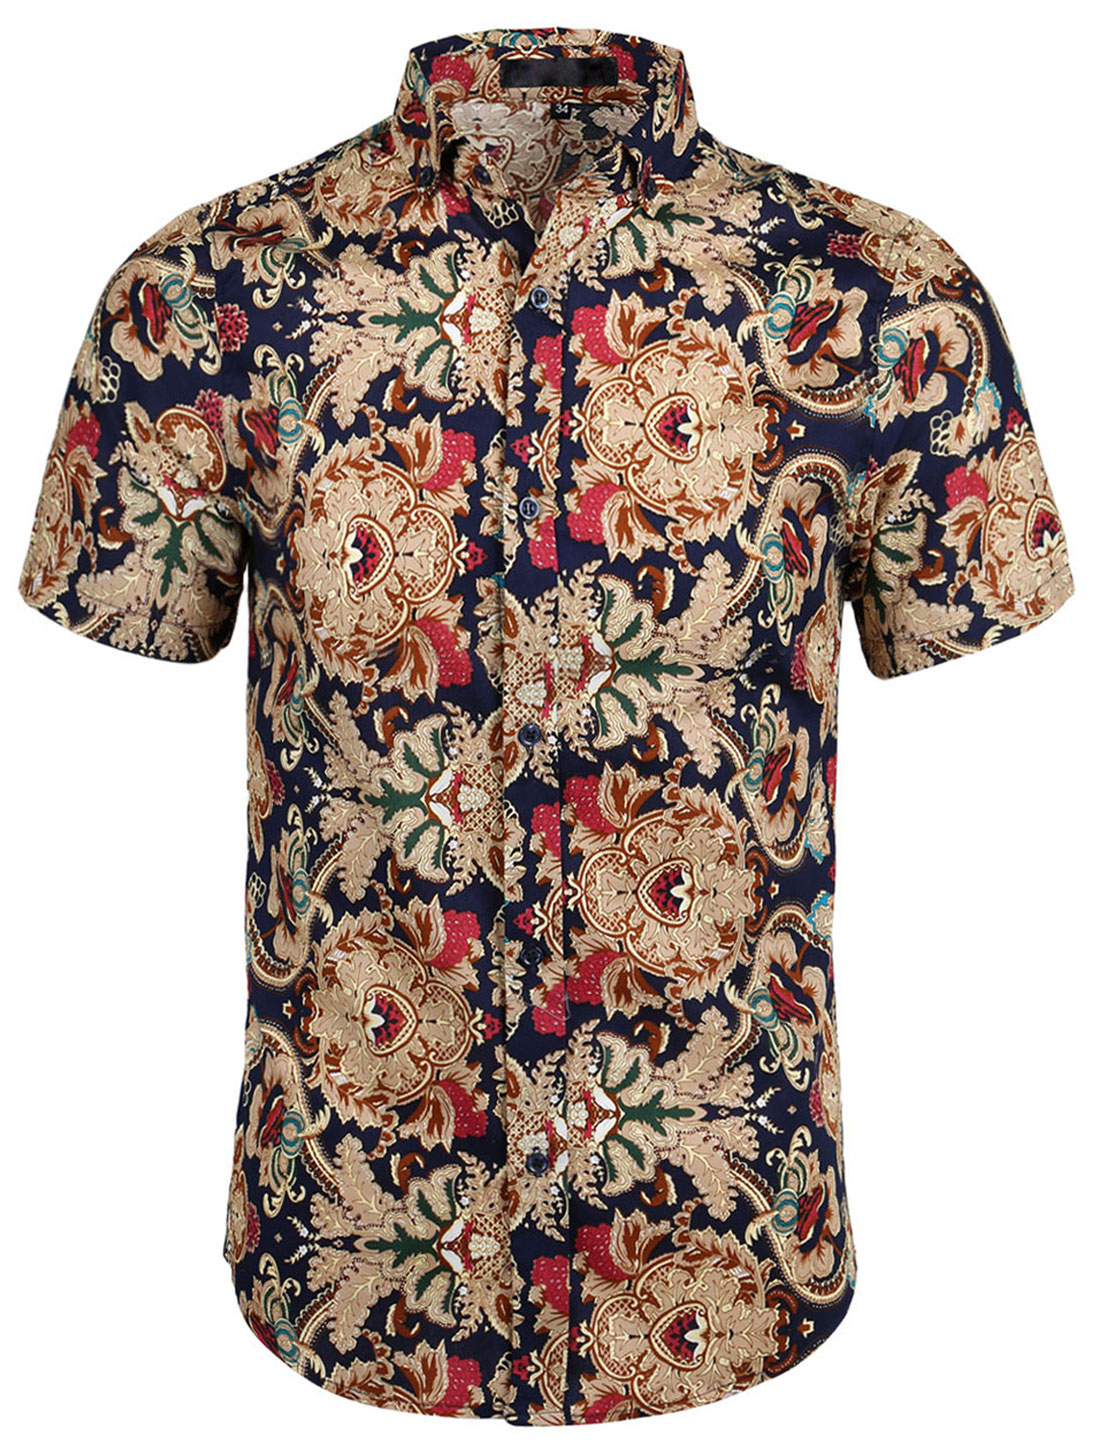 Men Short Sleeve Button Down Vintage Print Summer Casual Hawaiian Shirt Navy Camel S